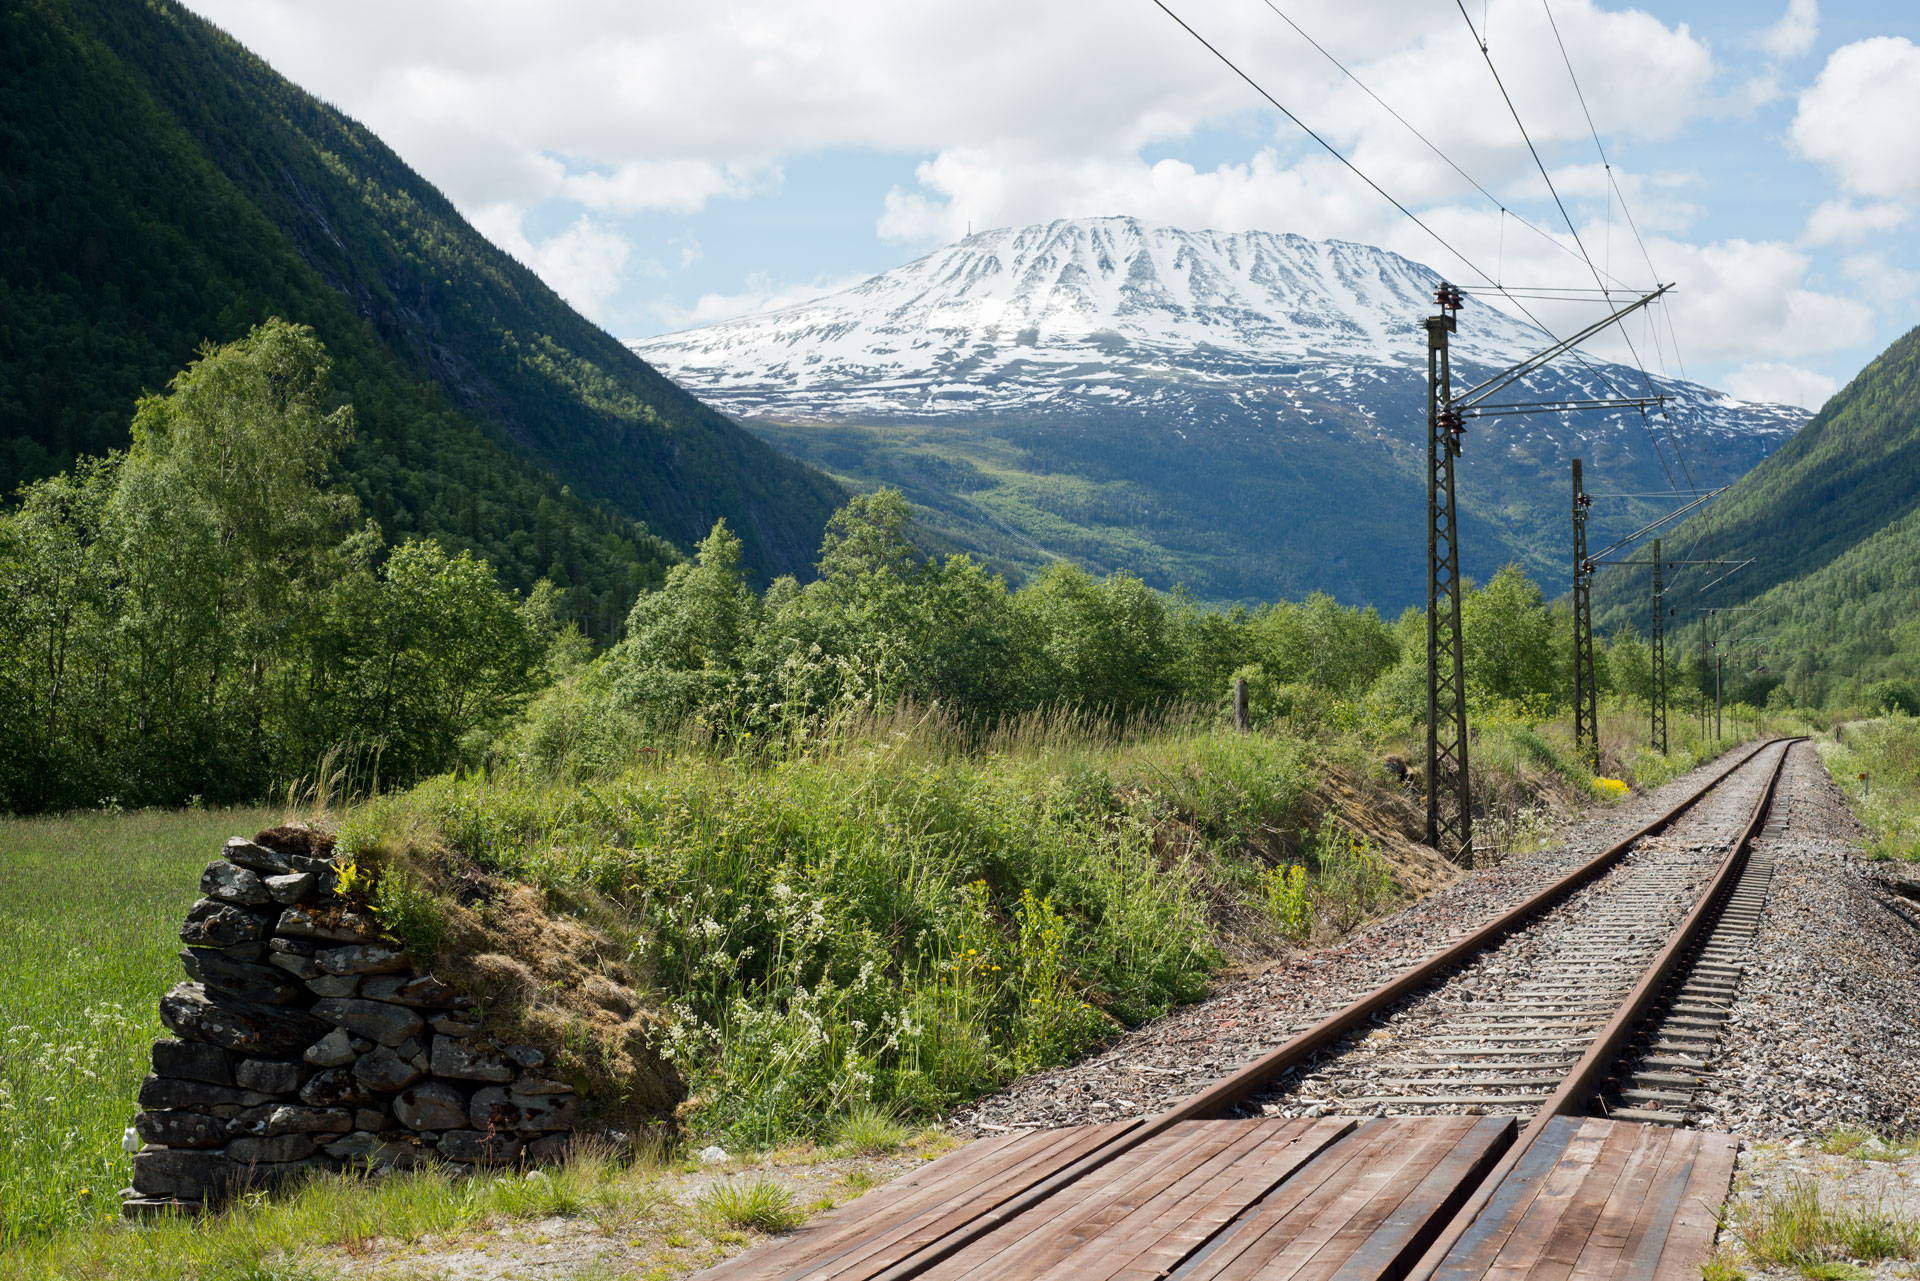 The Rjukan Line. Wind wall at Miland on the Rjukan Line. Gaustatoppen. Photo: Per Berntsen, the Directorate for Cultural Heritage